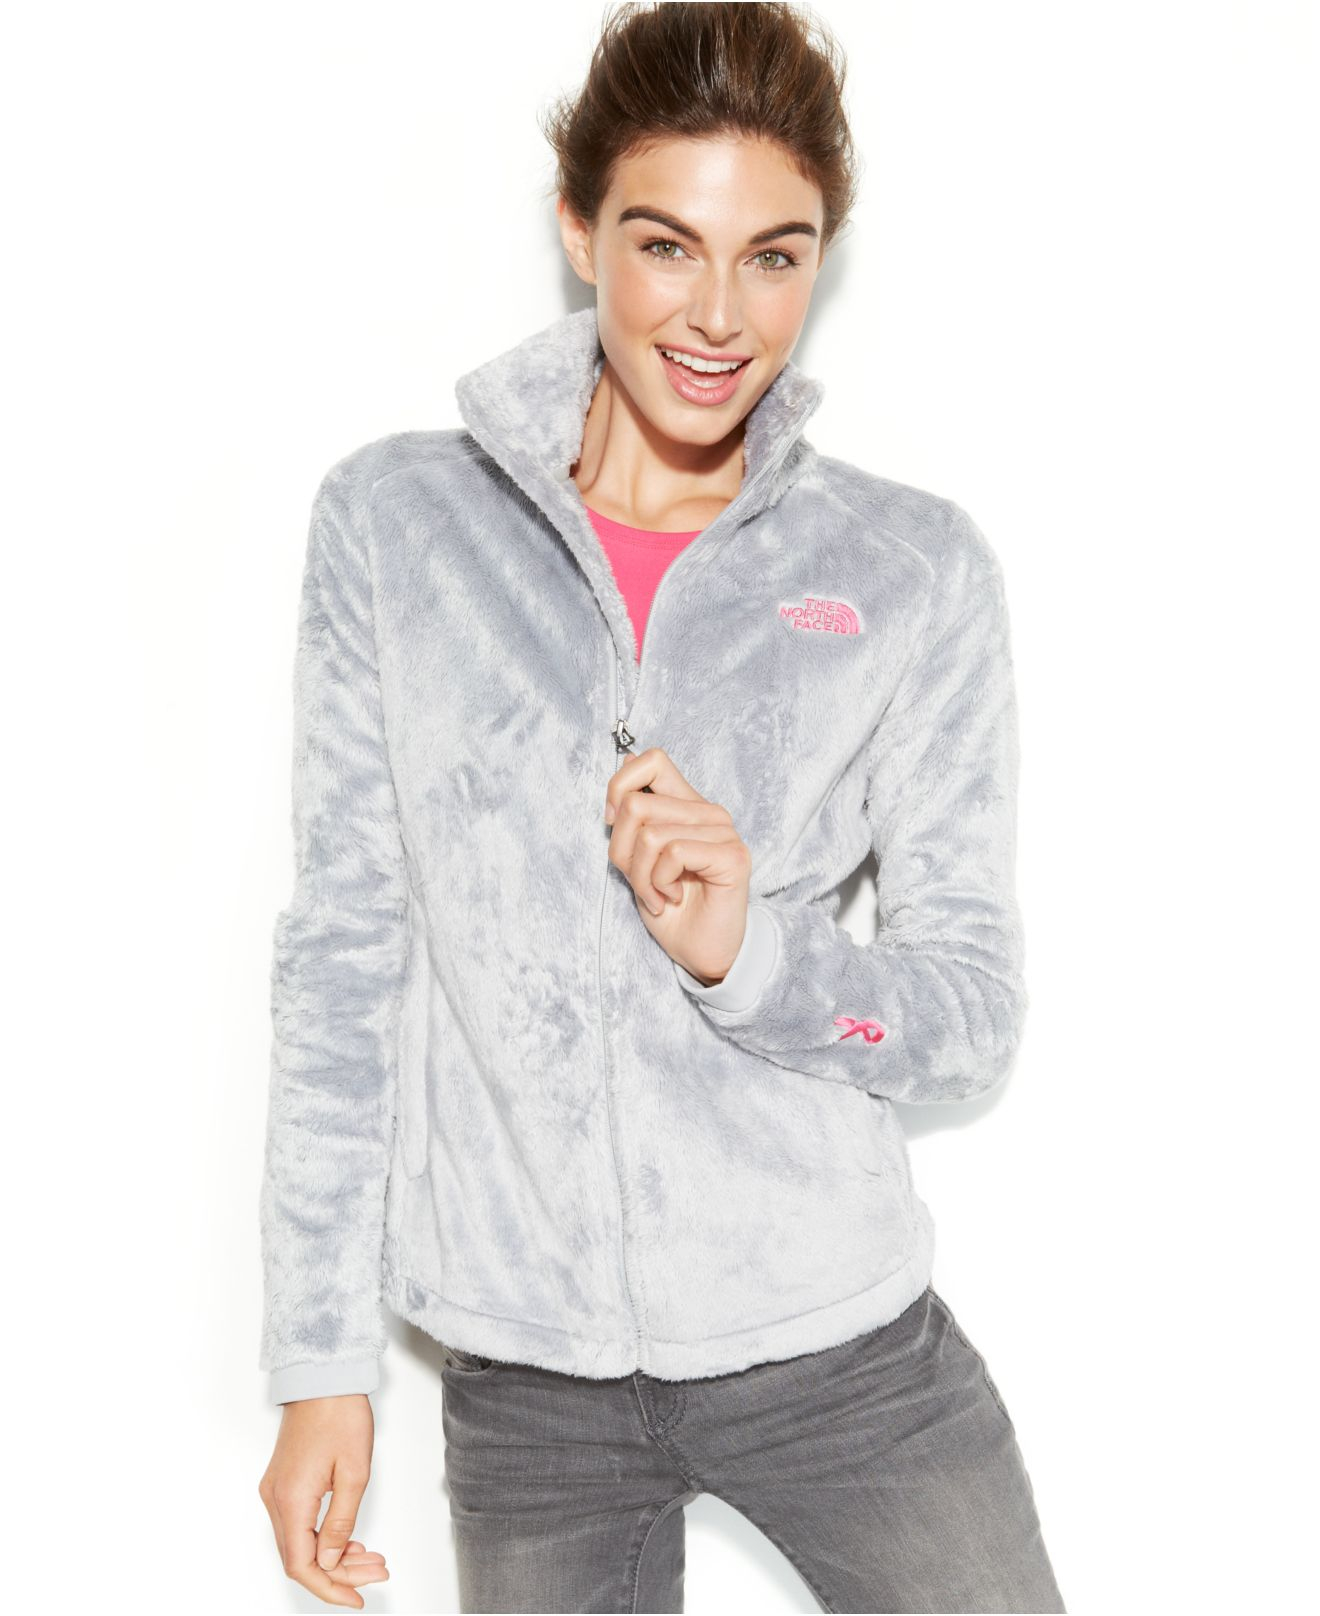 lyst the north face pink ribbon osito 2 fleece jacket in gray rh lyst com